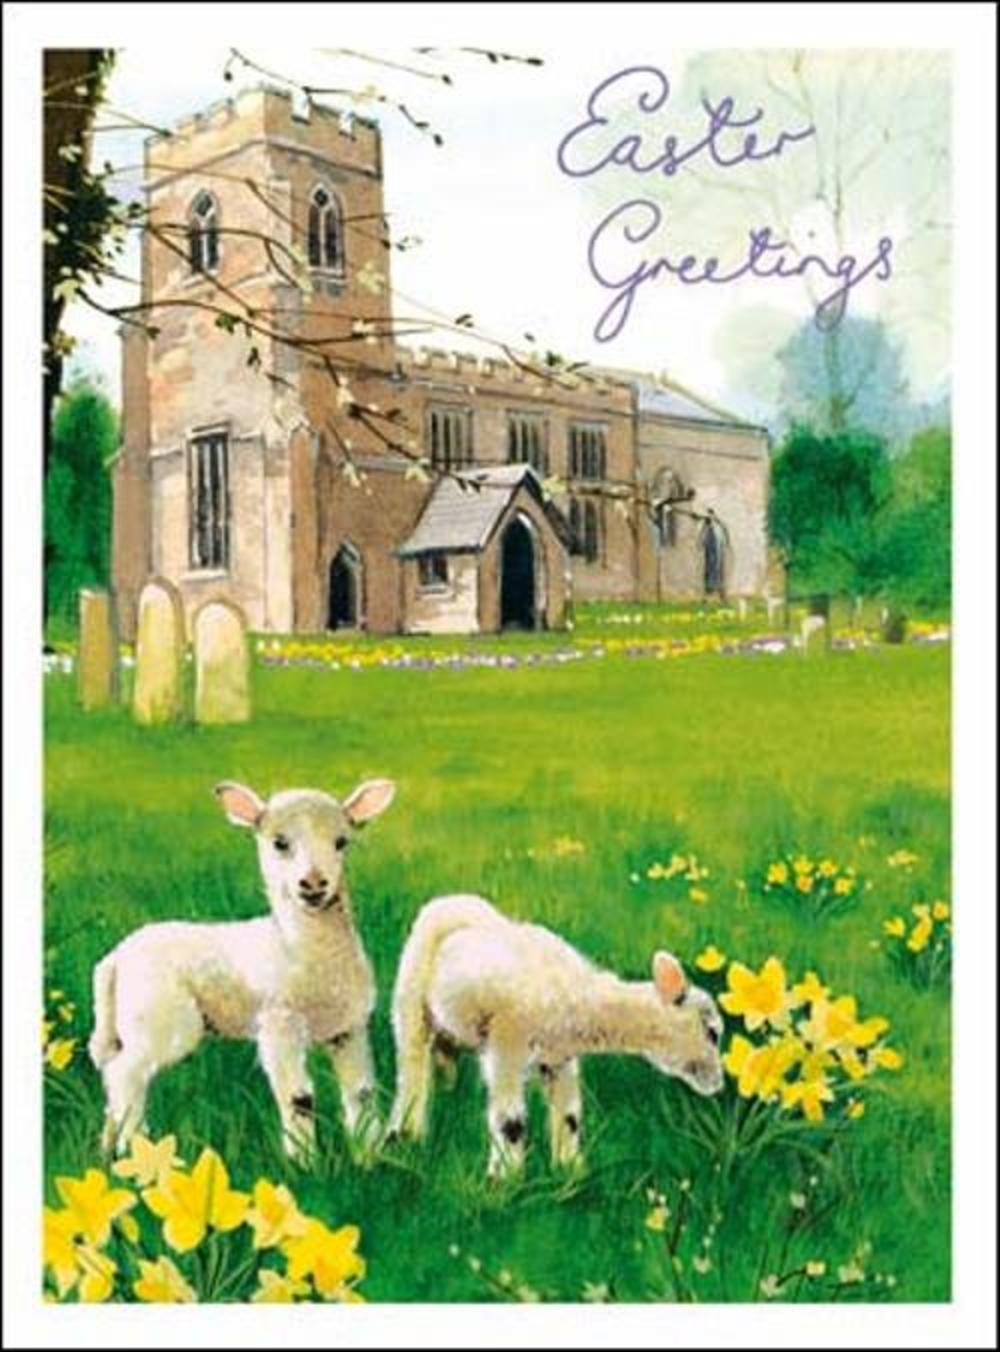 Pack Of 5 Church Easter Greetings Cards Cards Love Kates